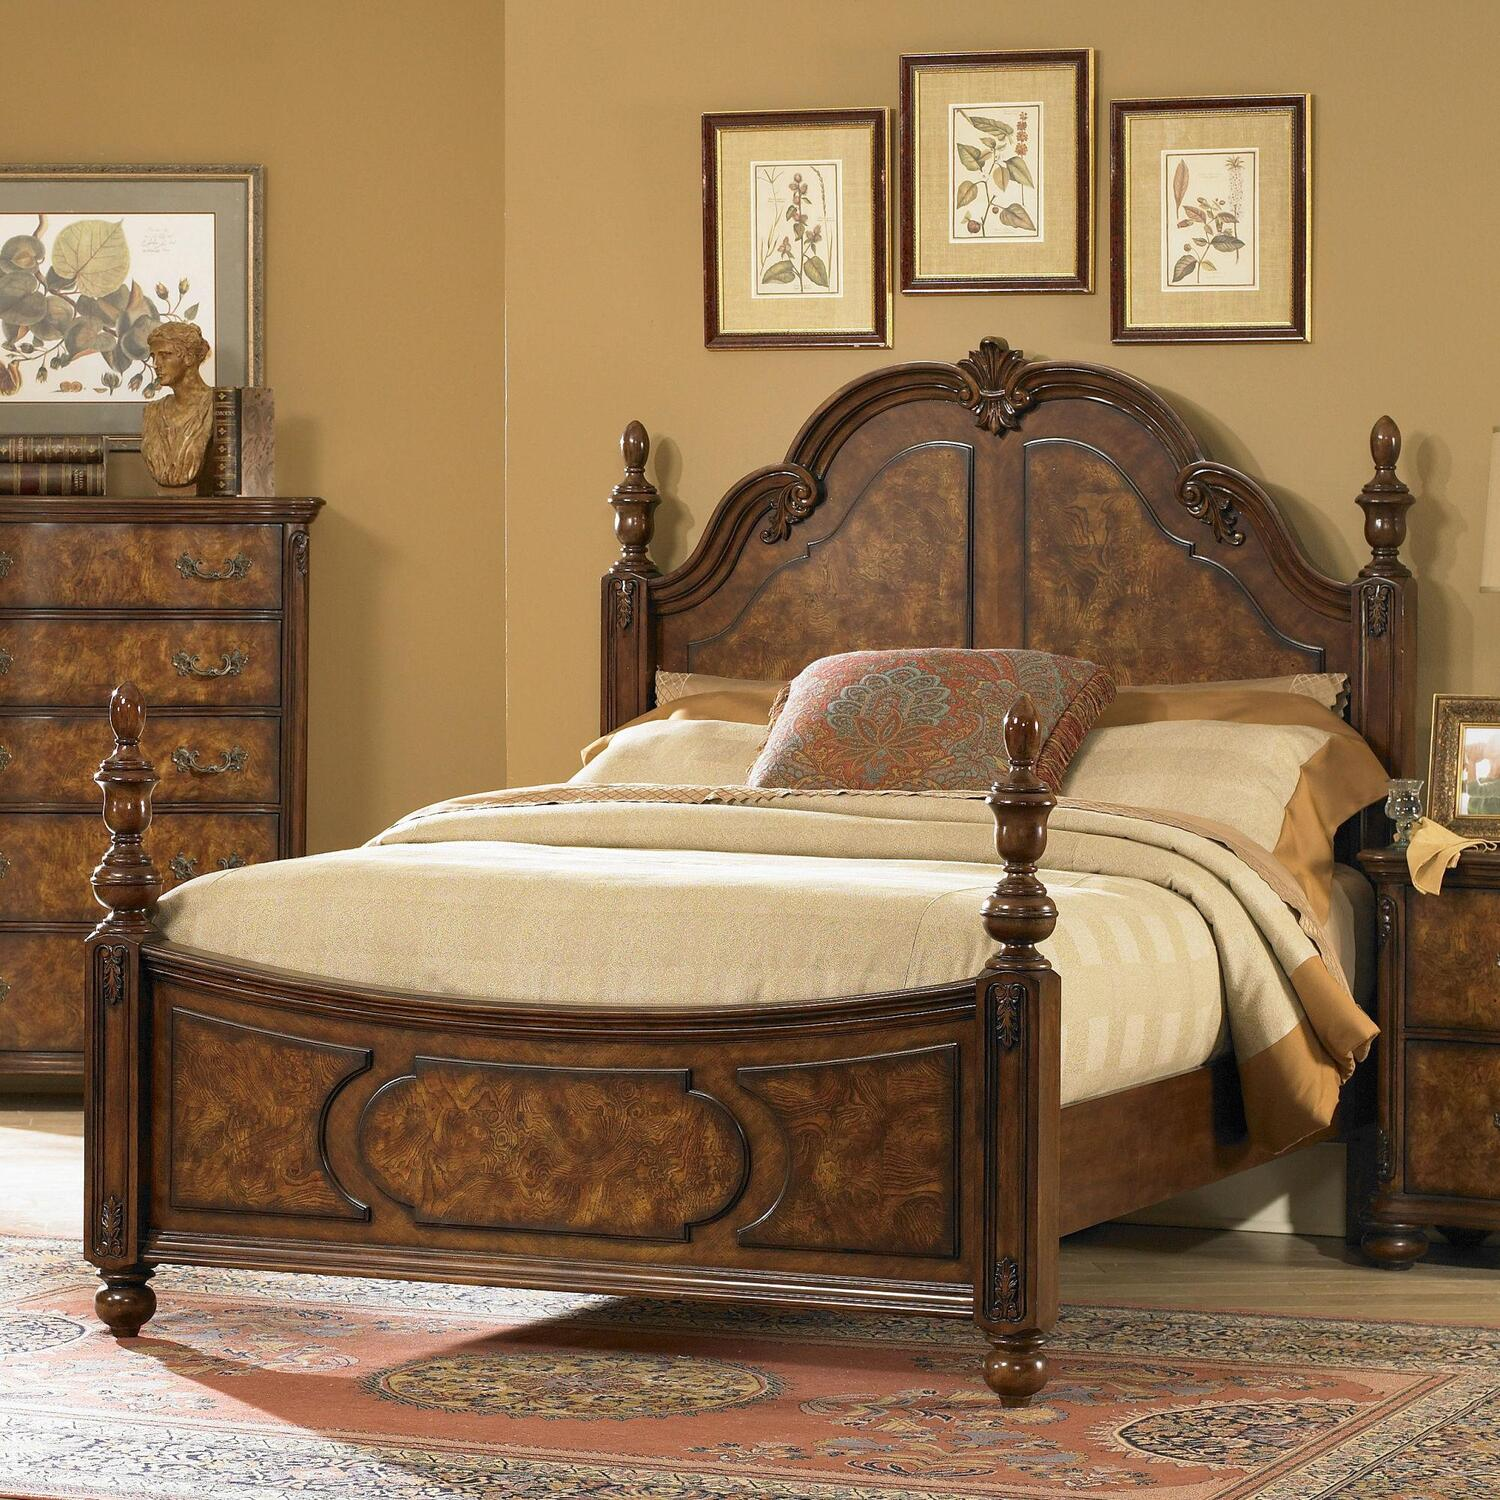 furniture reproduction furniture bedroom chippendale furniture